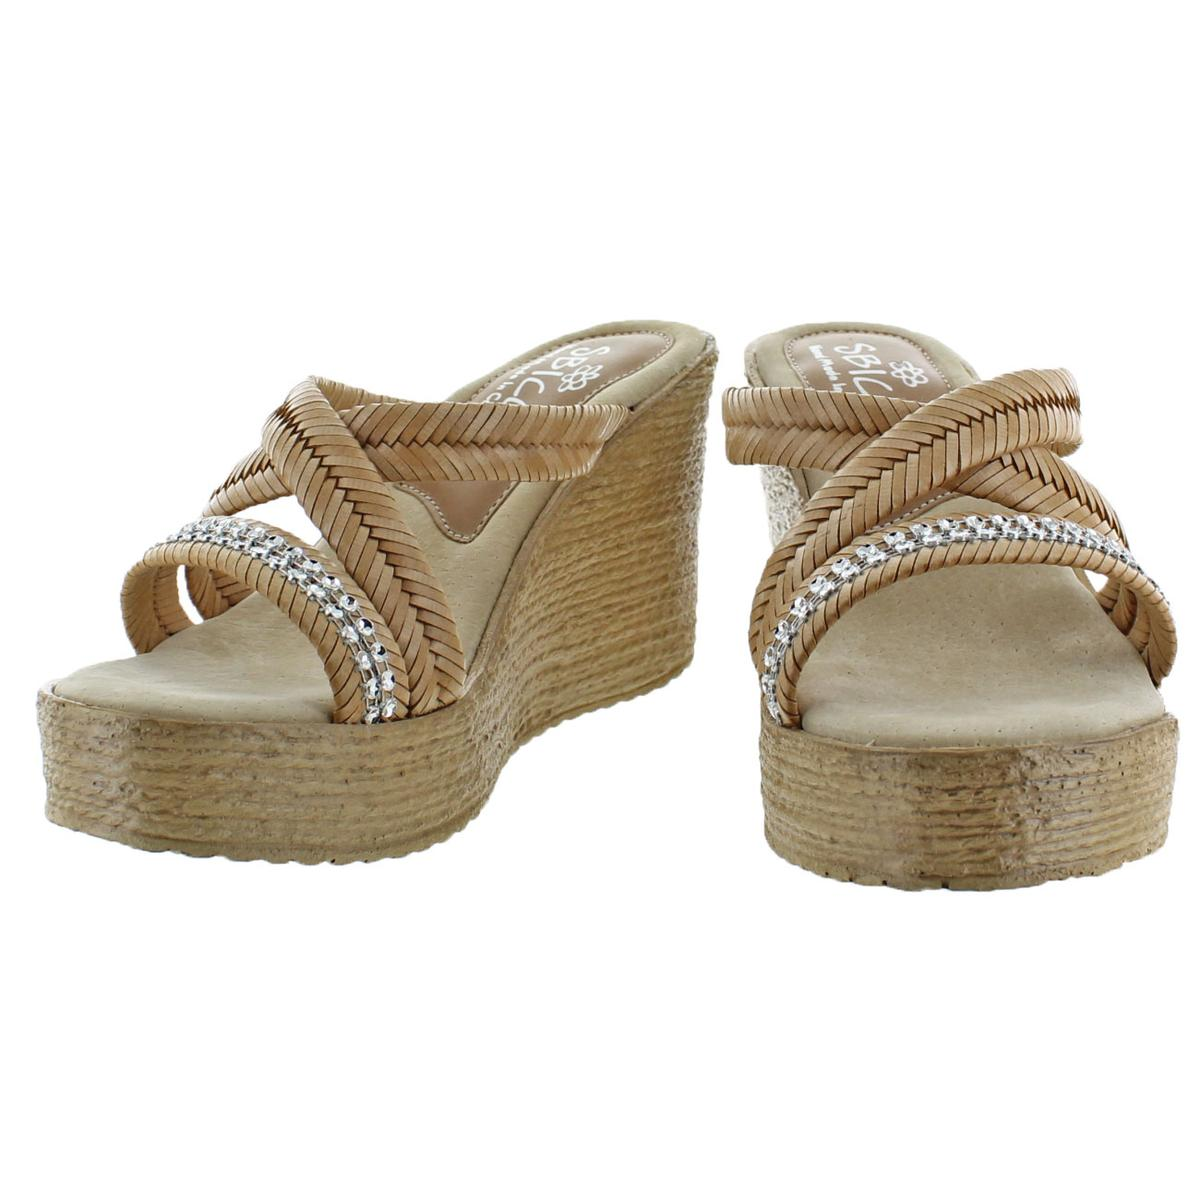 Sbicca-Zennia-Women-039-s-Jute-Slip-On-Chevron-Braided-Wedge-Sandals-Shoes thumbnail 7